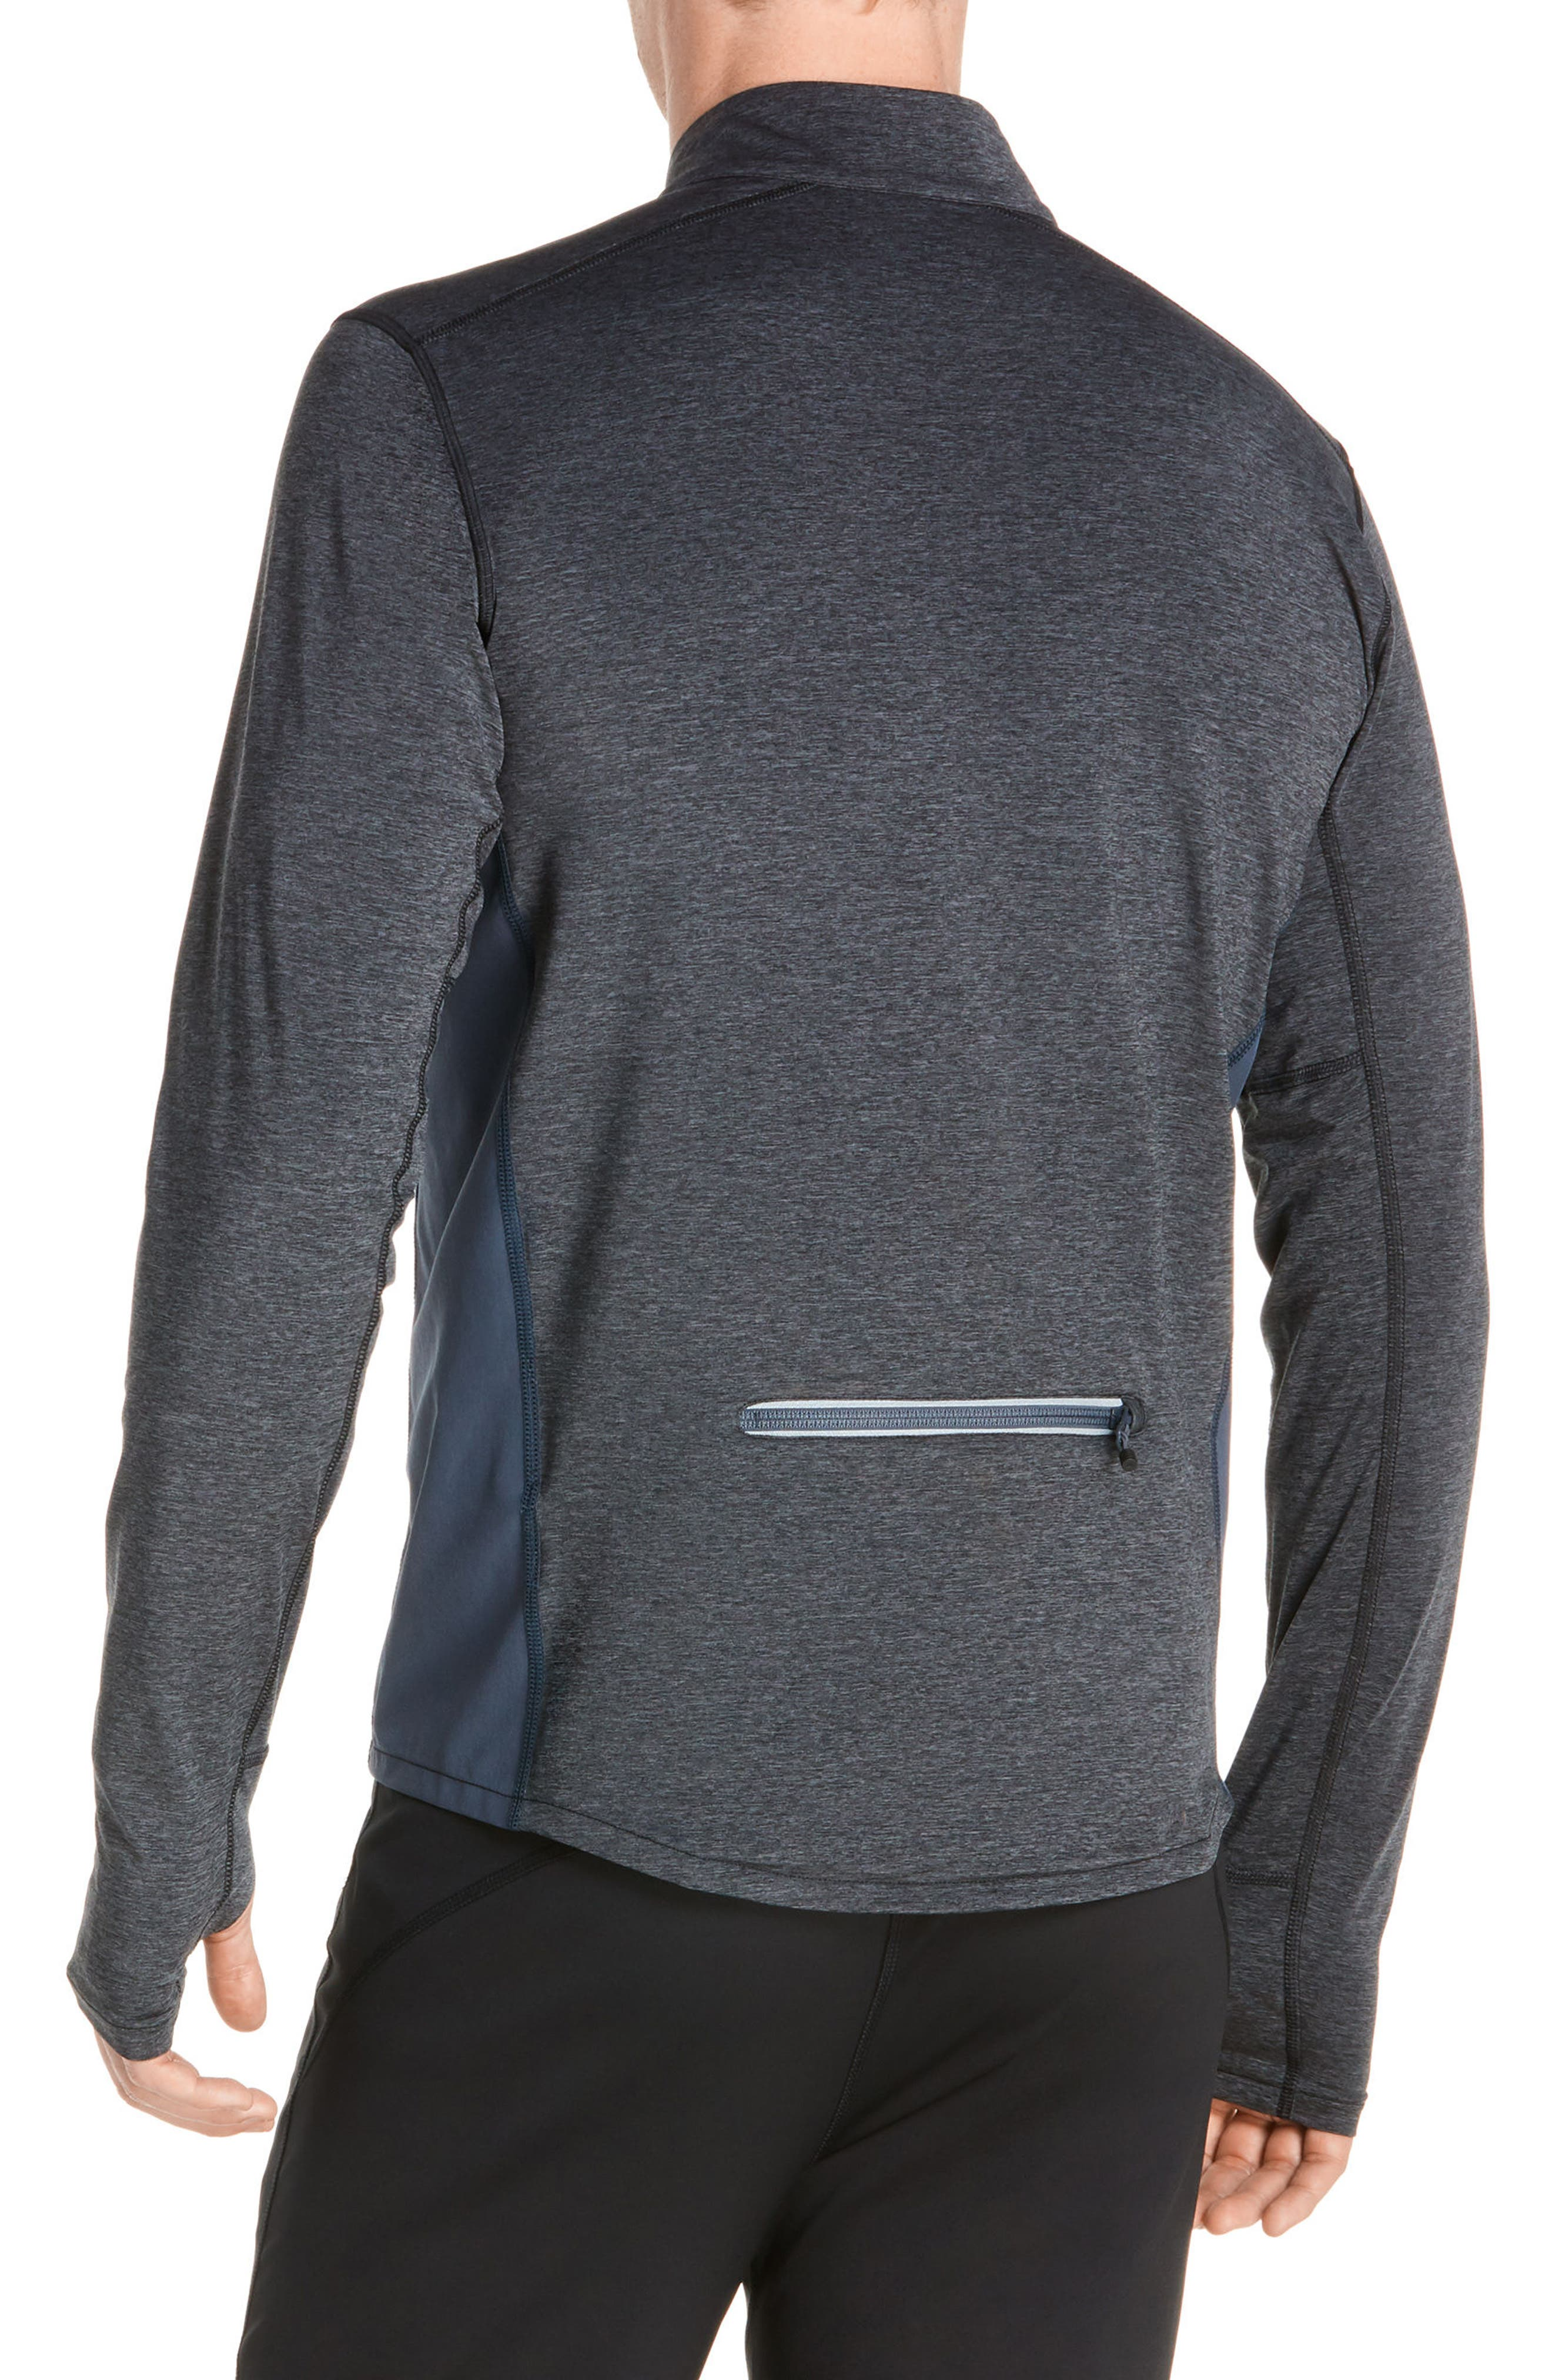 Brushed Tech Jacket,                             Alternate thumbnail 3, color,                             062